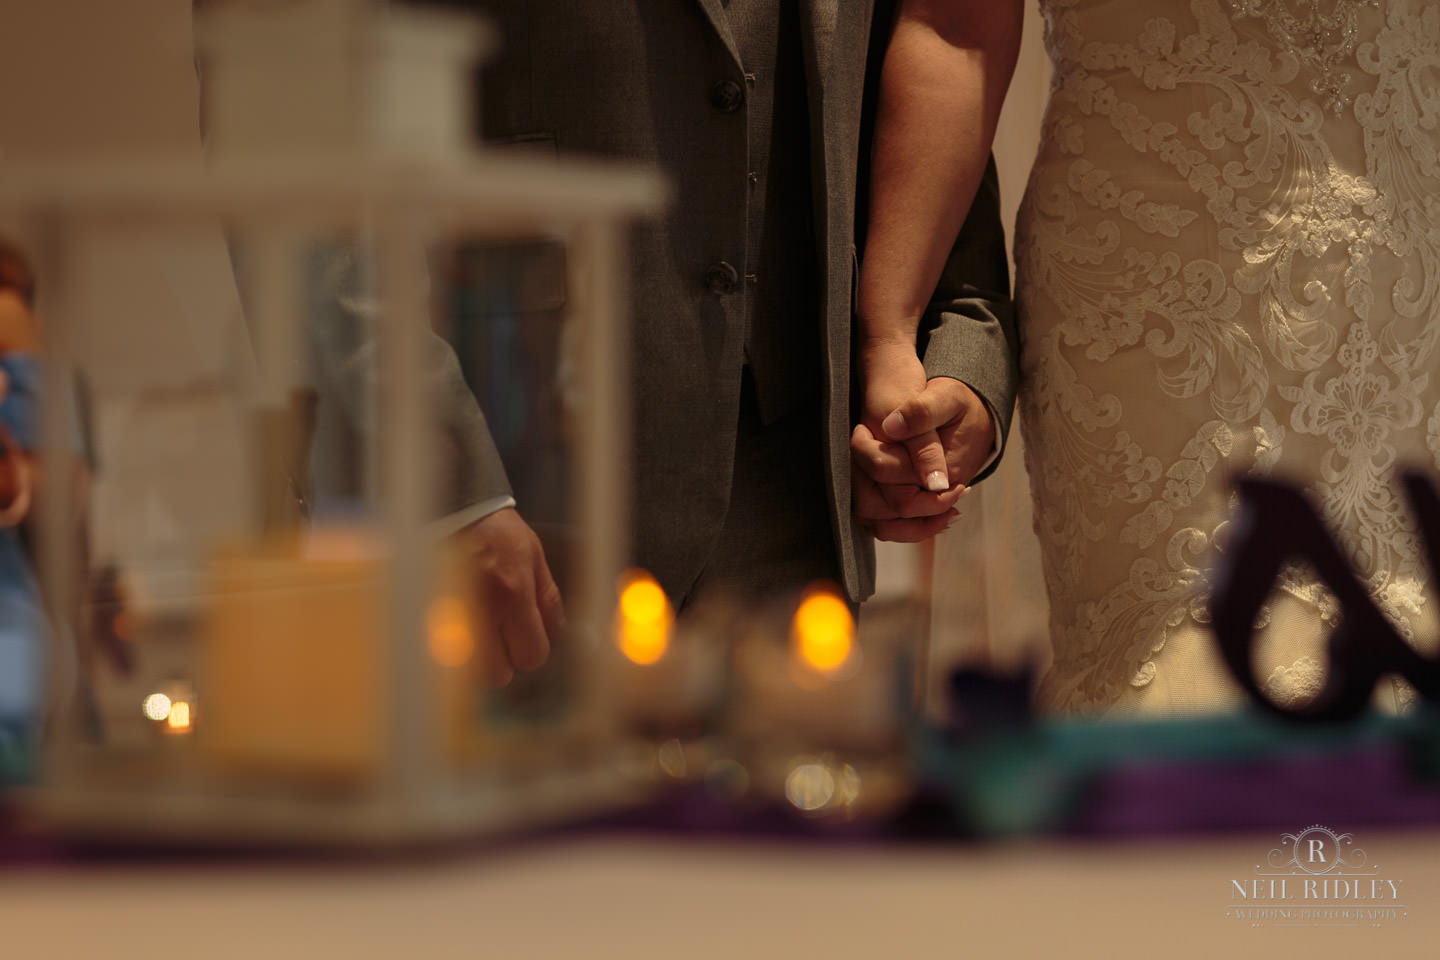 Bride and Groom hgold hands during the Wedding Ceremony at The Mill at Conder Green